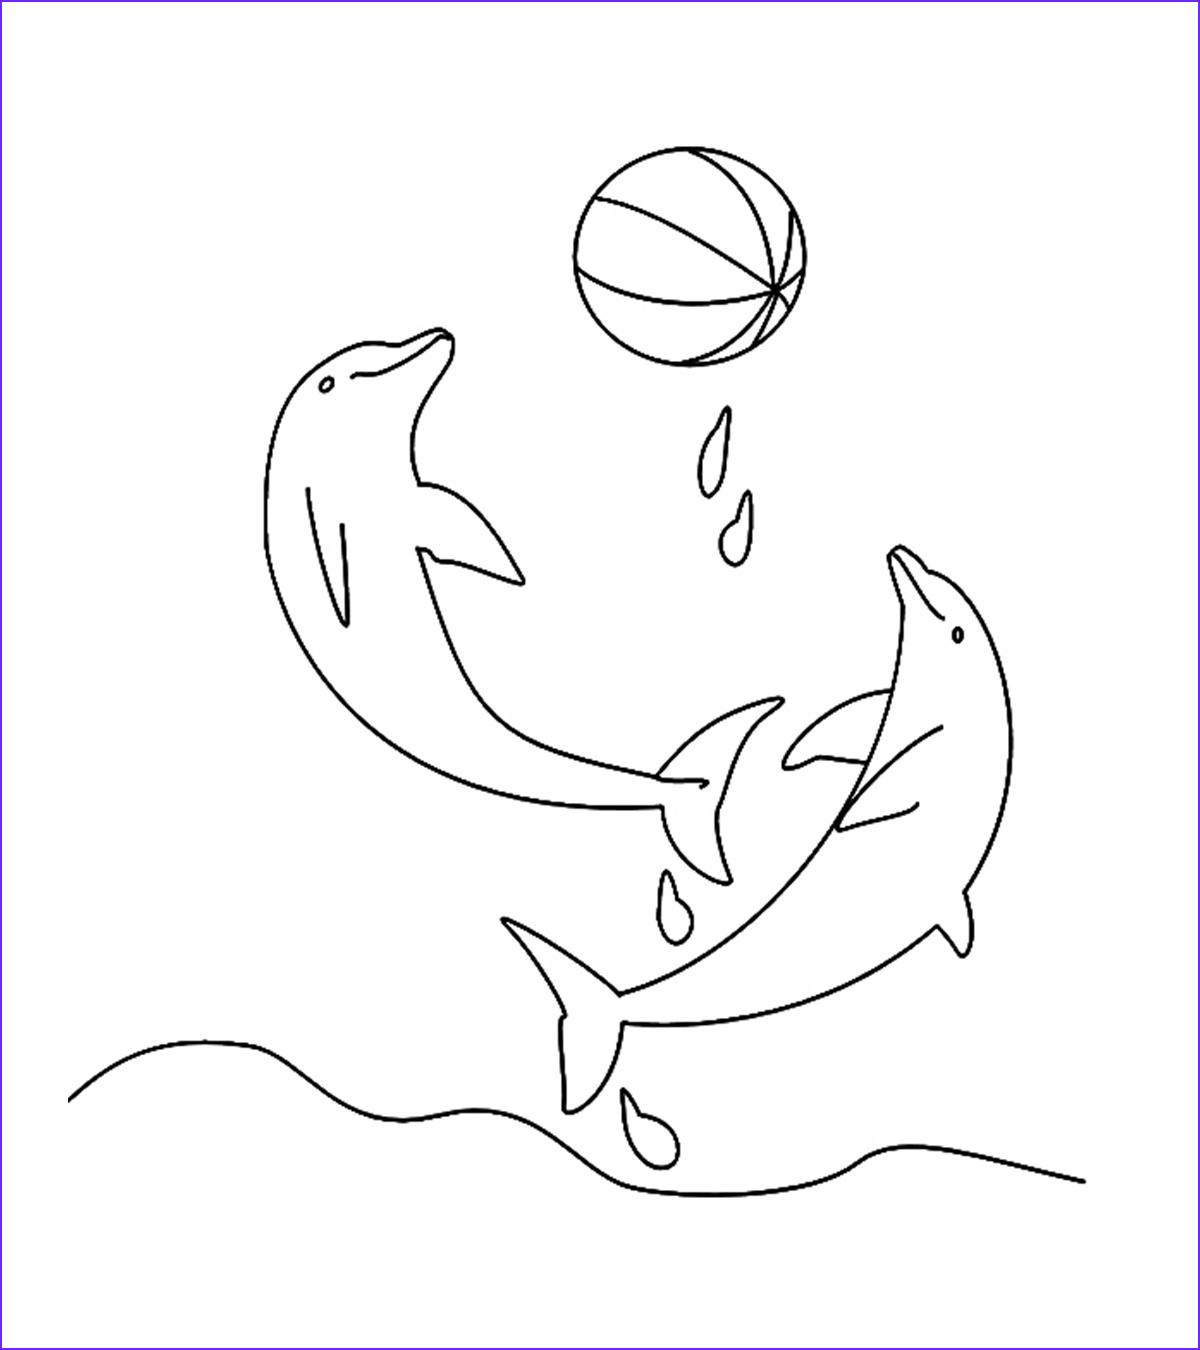 Dolphin Coloring Pictures Unique Images Animal Coloring Pages Momjunction